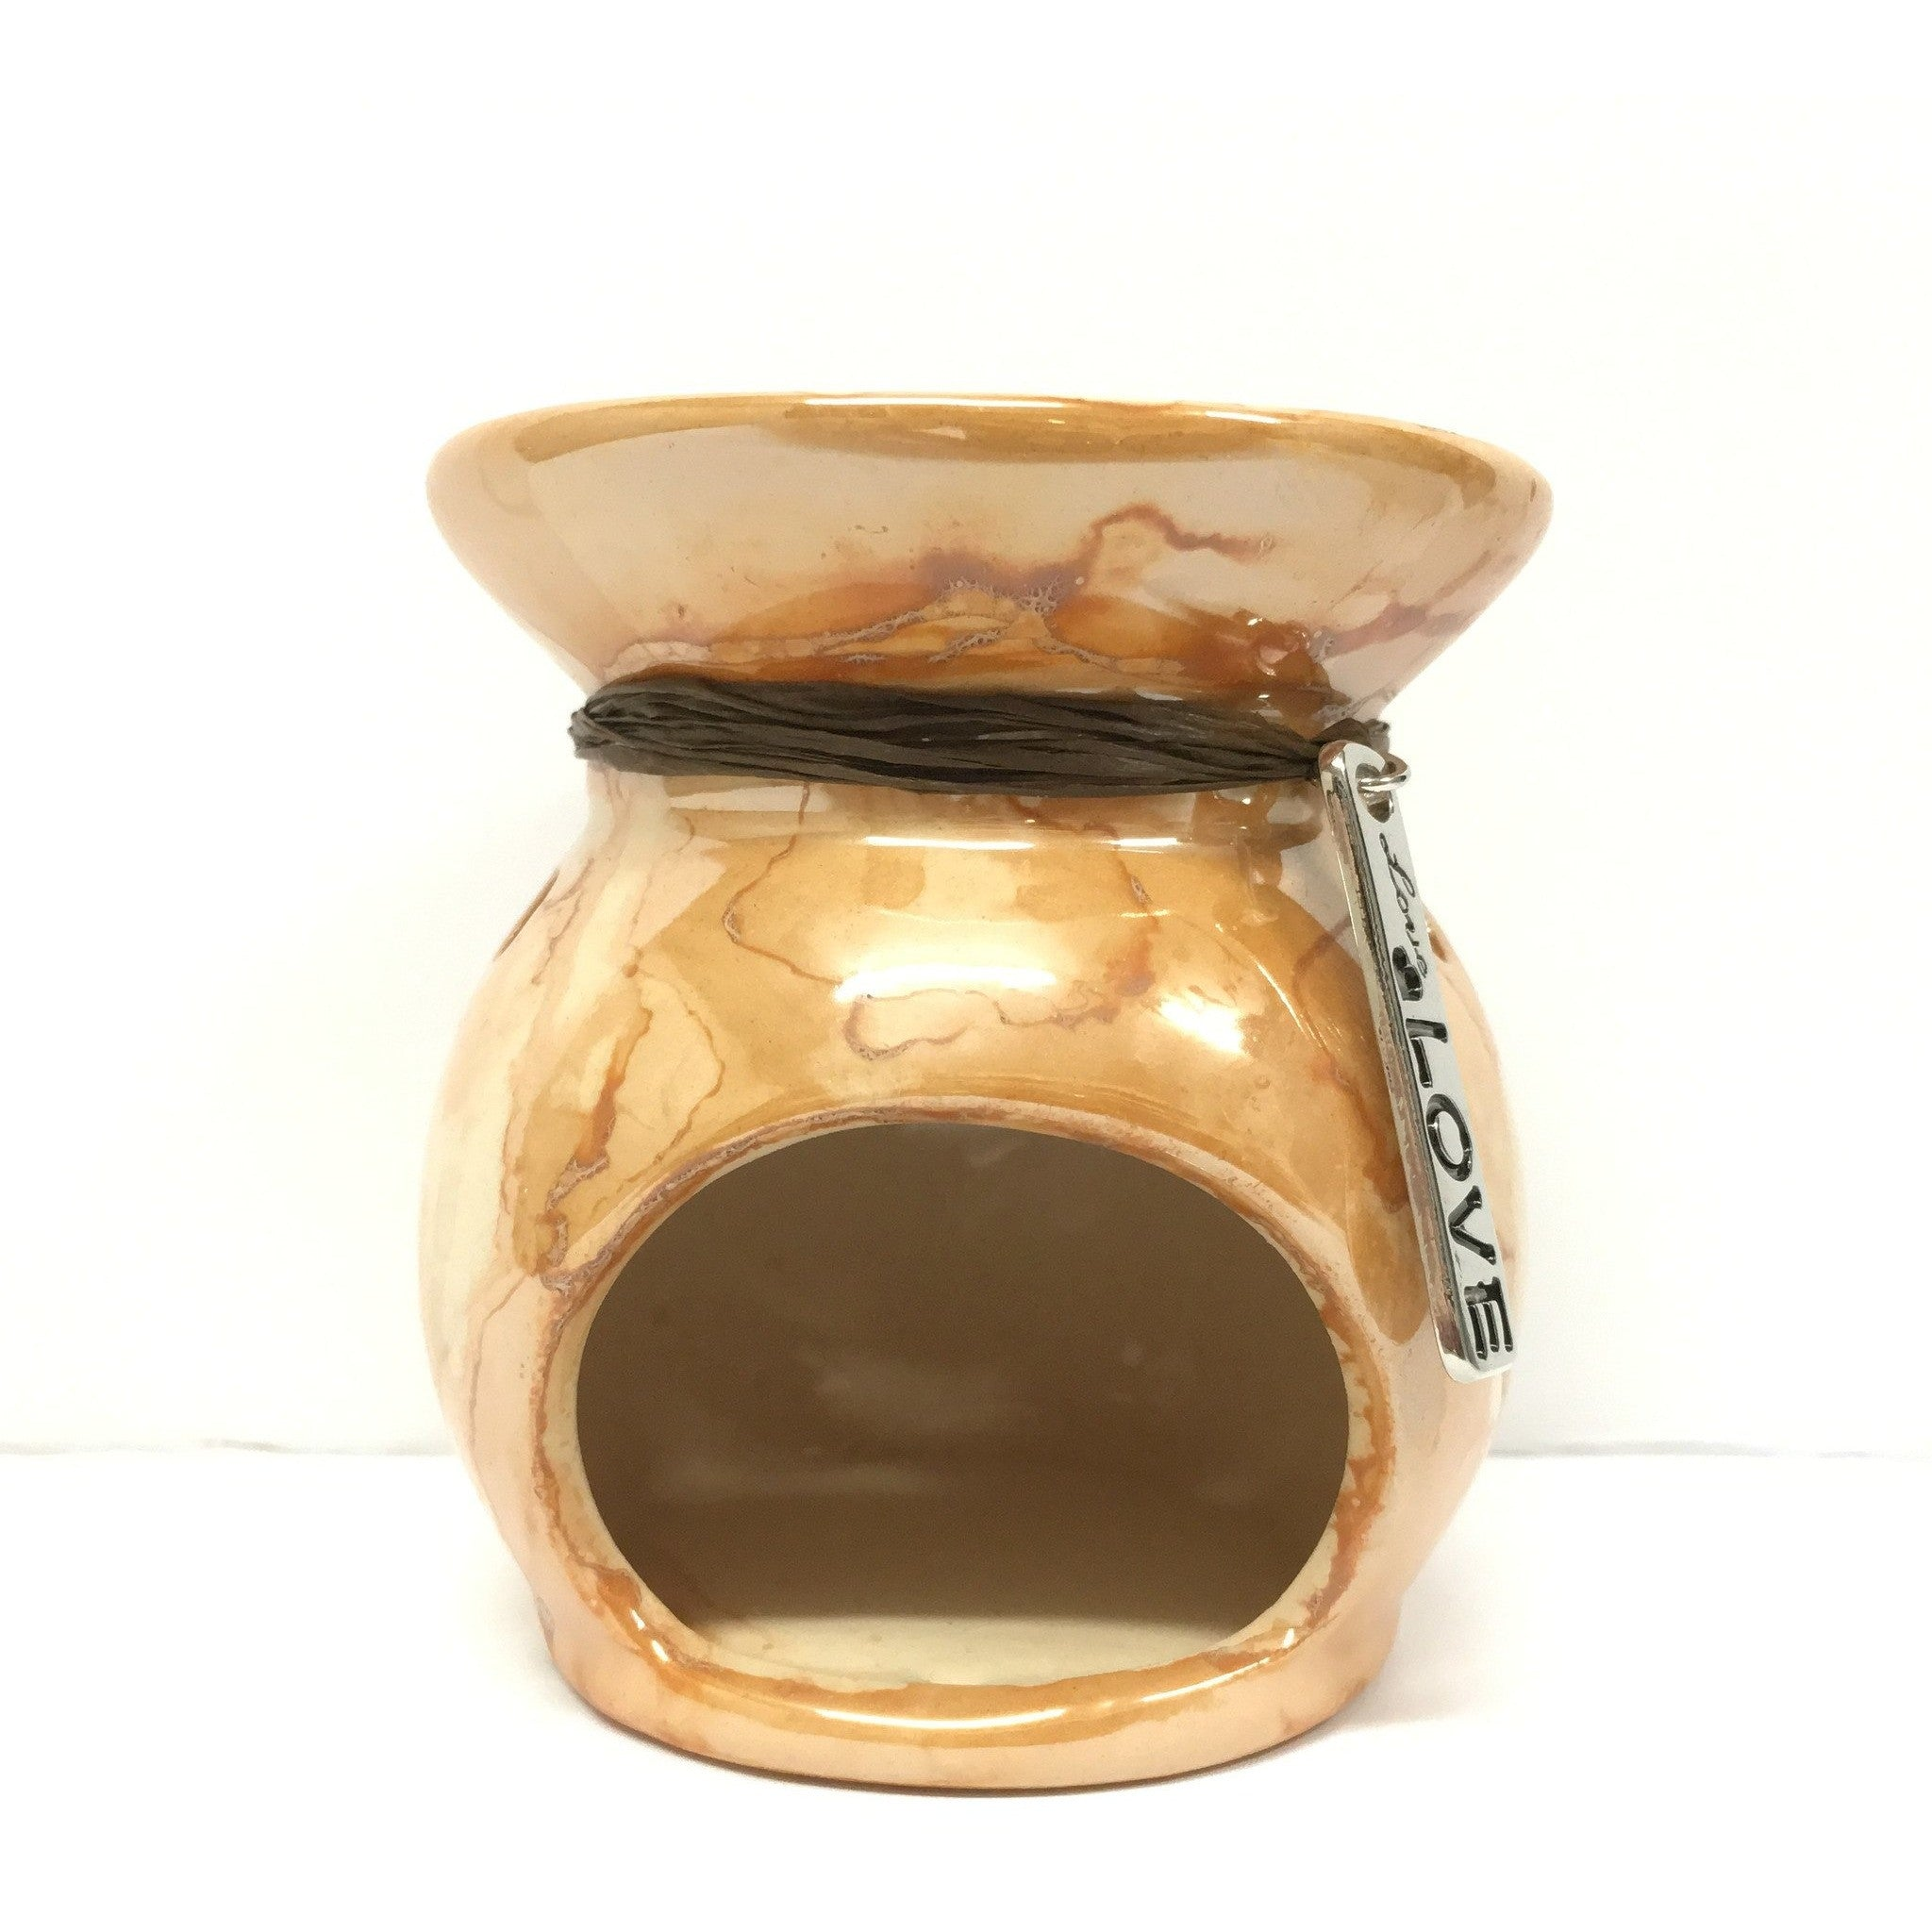 Ceramic Melters for Tealights & Melts -  - Bella-Mia Naturals All Natural Soy Candles & Lip Balms - 1